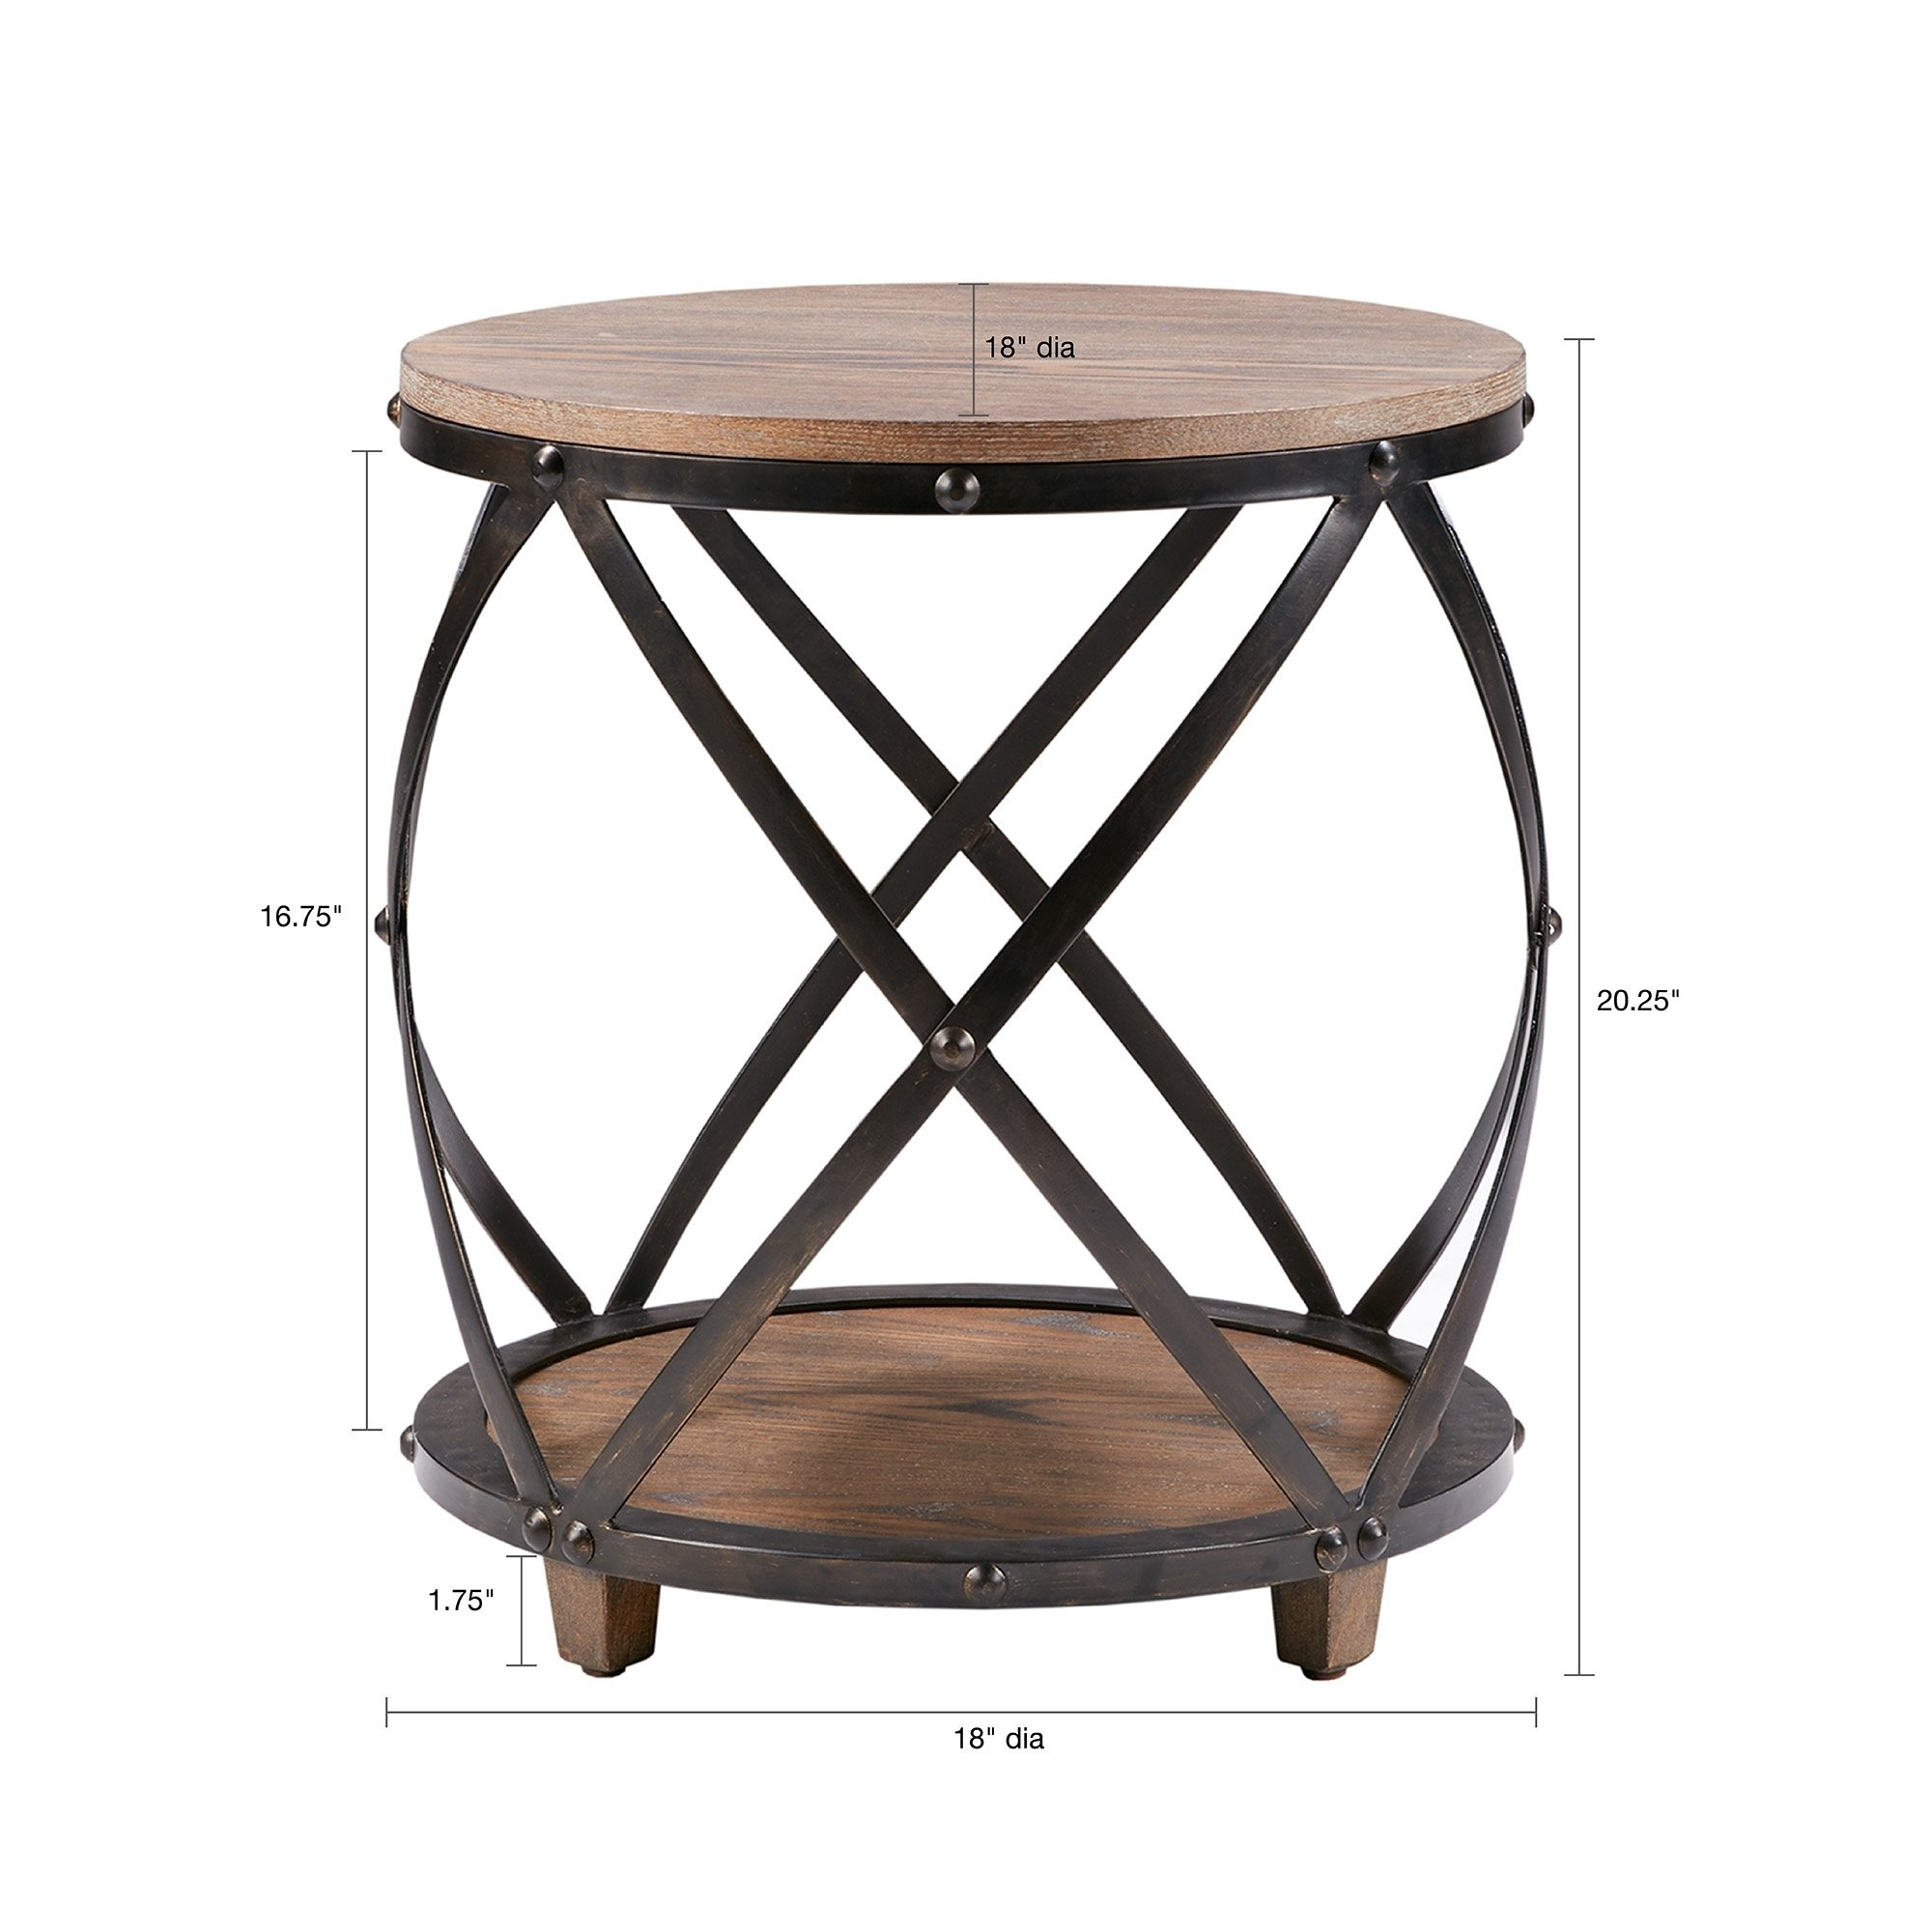 madison park kagen antique bronze bent metal accent table free shipping today round dark wood end sage green coffee asian lamps linen runner grill with side dining room target